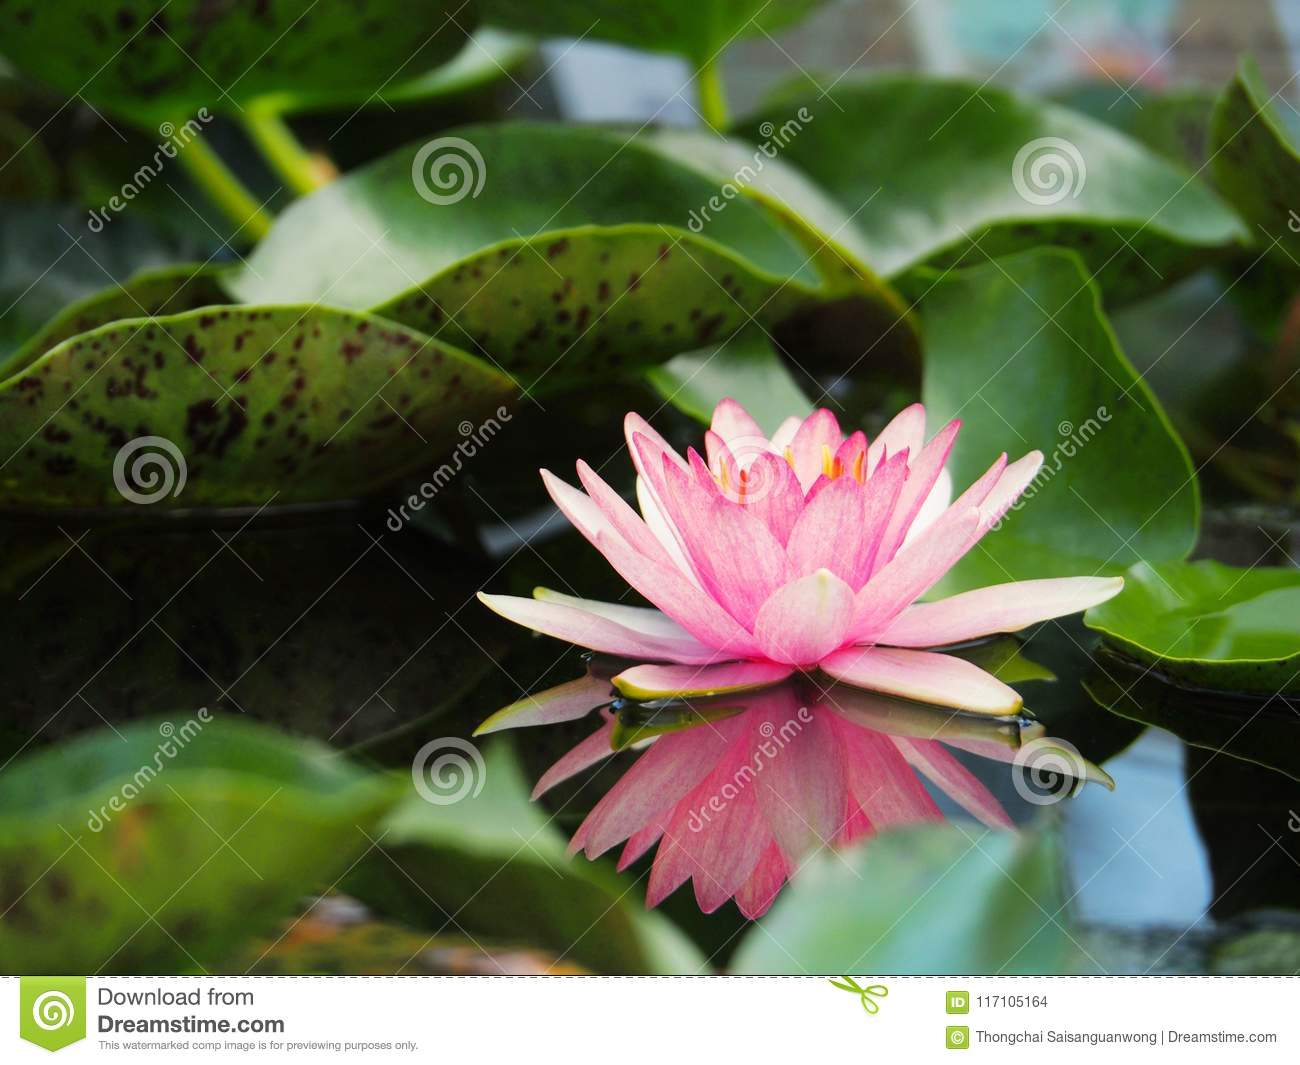 Lotus Flower Or Water Lily Pink With Green Leaves Beautifully